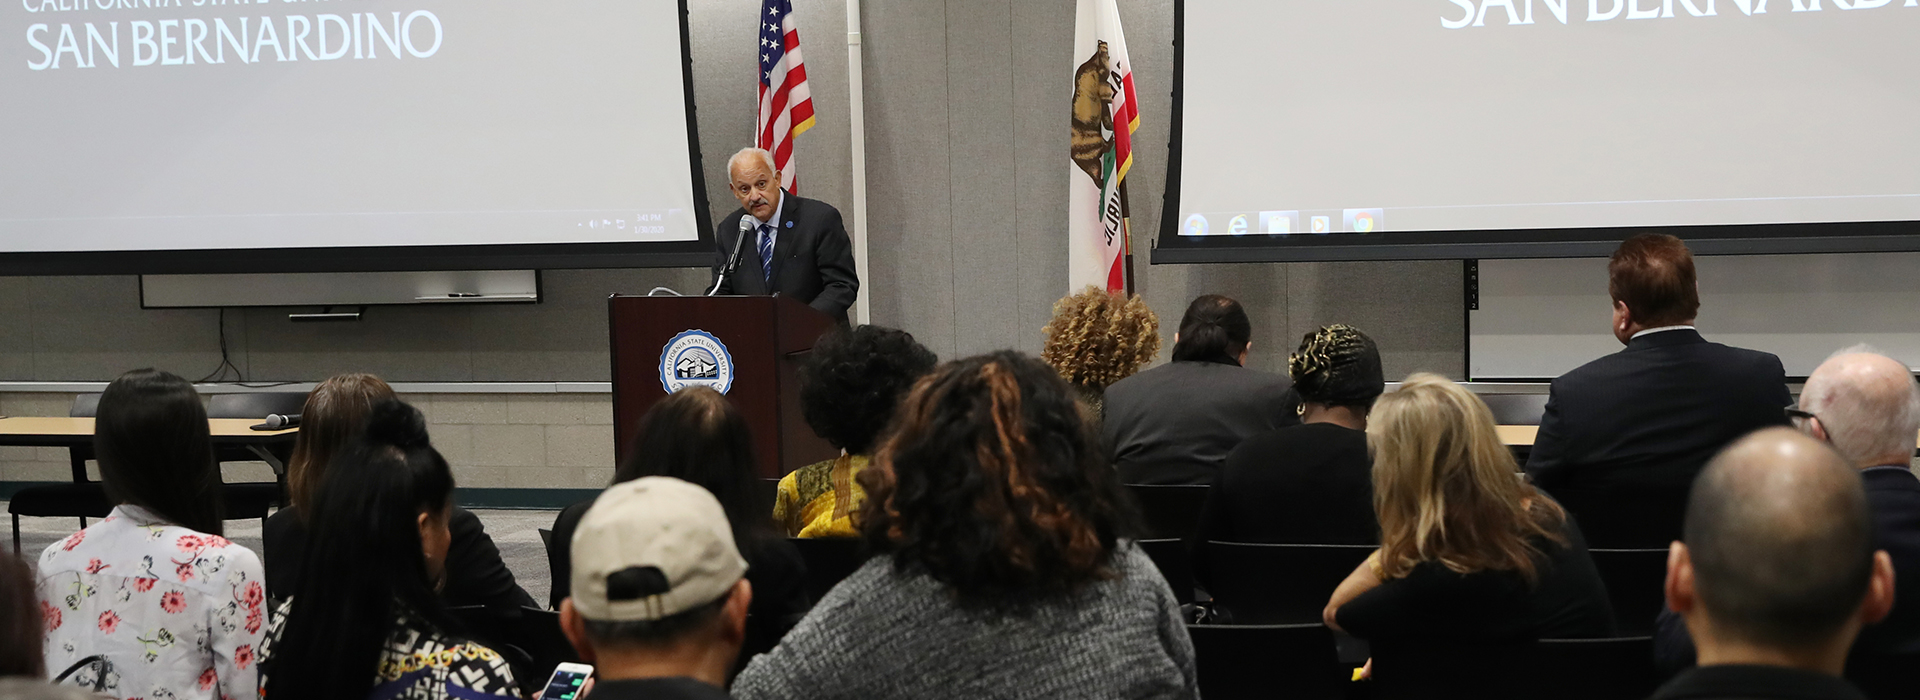 Operation Confidence meets at CSUSB to build working relationships to assist homeless veterans